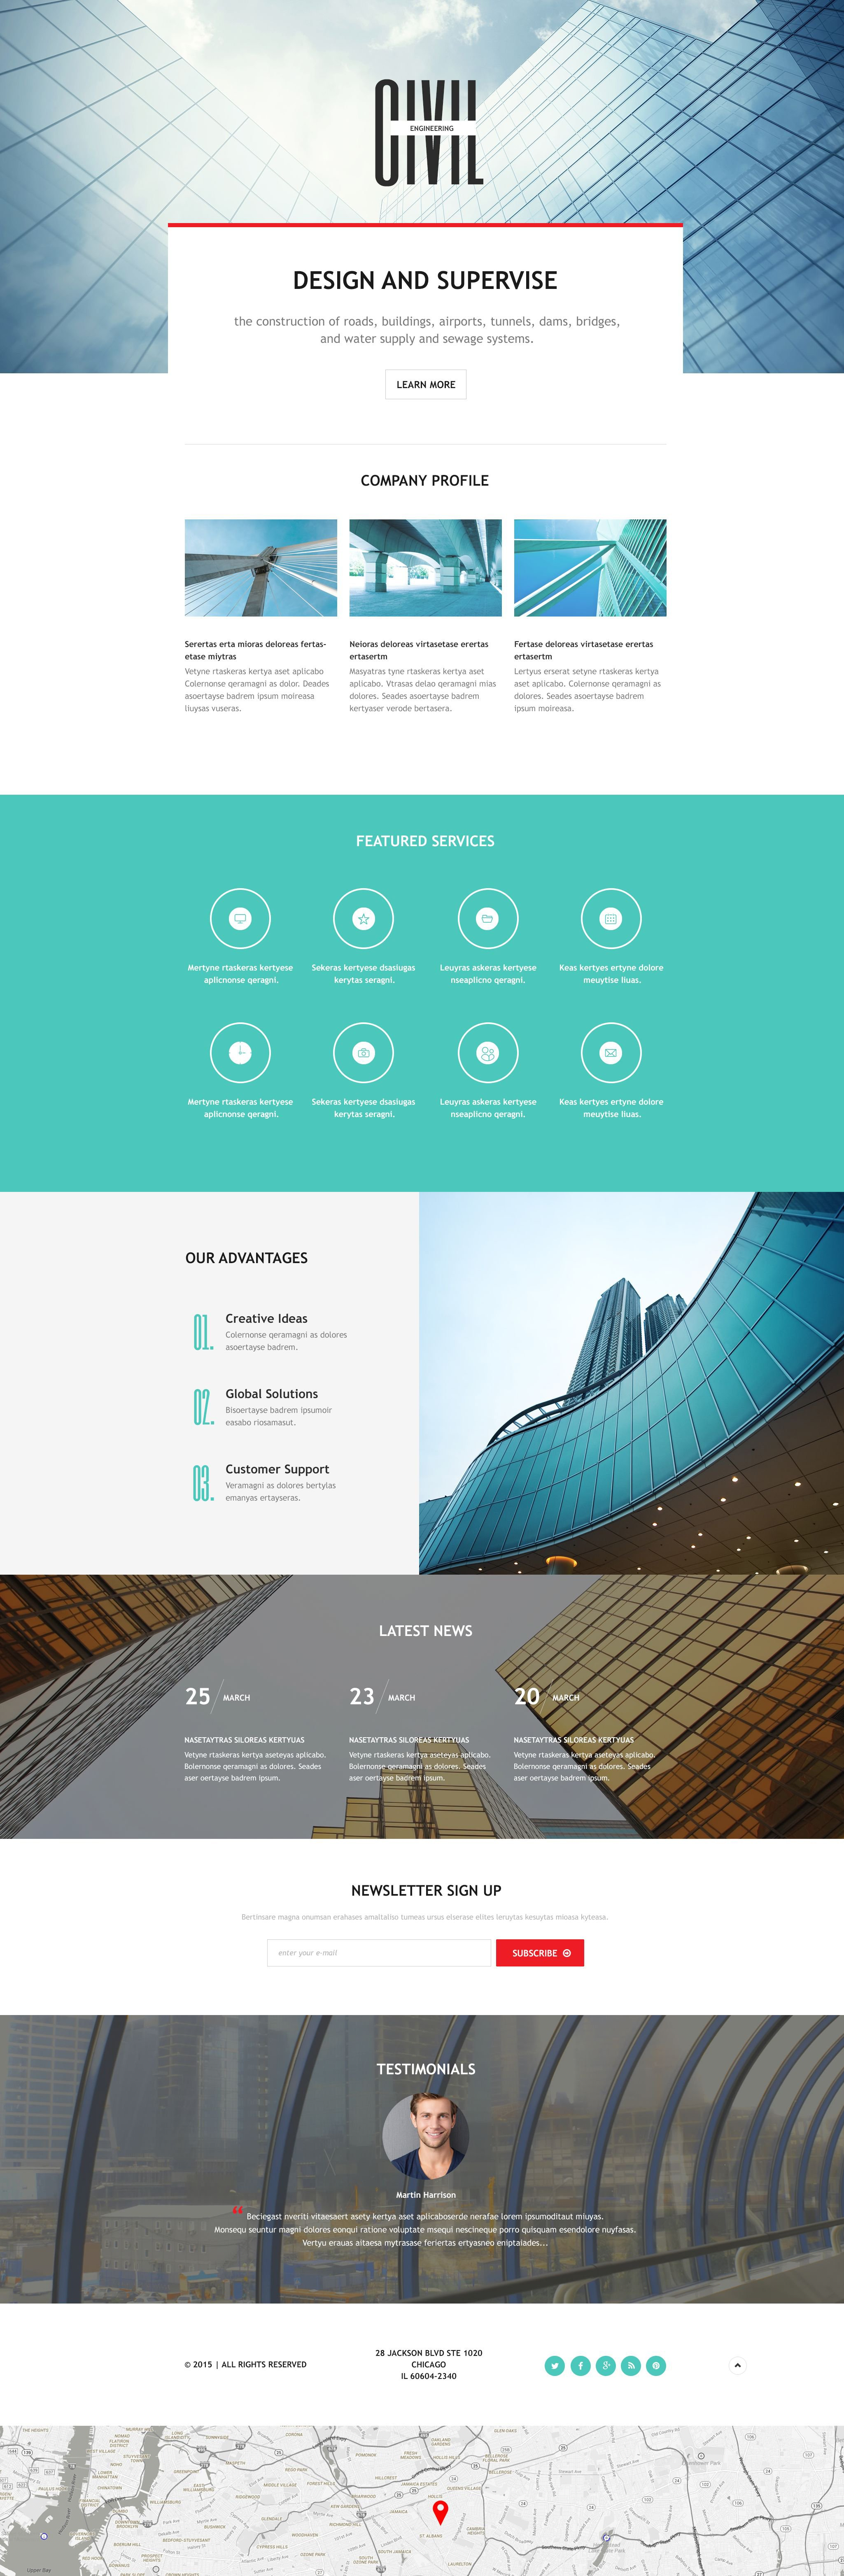 The Architecture Company Landing Page Template Design 54596, one of the best Landing Page templates of its kind (architecture, most popular), also known as architecture company Landing Page template, buildings Landing Page template, technology Landing Page template, innovation Landing Page template, skyscrapers Landing Page template, projects Landing Page template, constructions Landing Page template, houses Landing Page template, work Landing Page template, team Landing Page template, strategy Landing Page template, services Landing Page template, support Landing Page template, planning solutions design Landing Page template, non-standard Landing Page template, creative ideas Landing Page template, catalogue Landing Page template, windows Landing Page template, doors Landing Page template, equipme and related with architecture company, buildings, technology, innovation, skyscrapers, projects, constructions, houses, work, team, strategy, services, support, planning solutions design, non-standard, creative ideas, catalogue, windows, doors, equipme, etc.